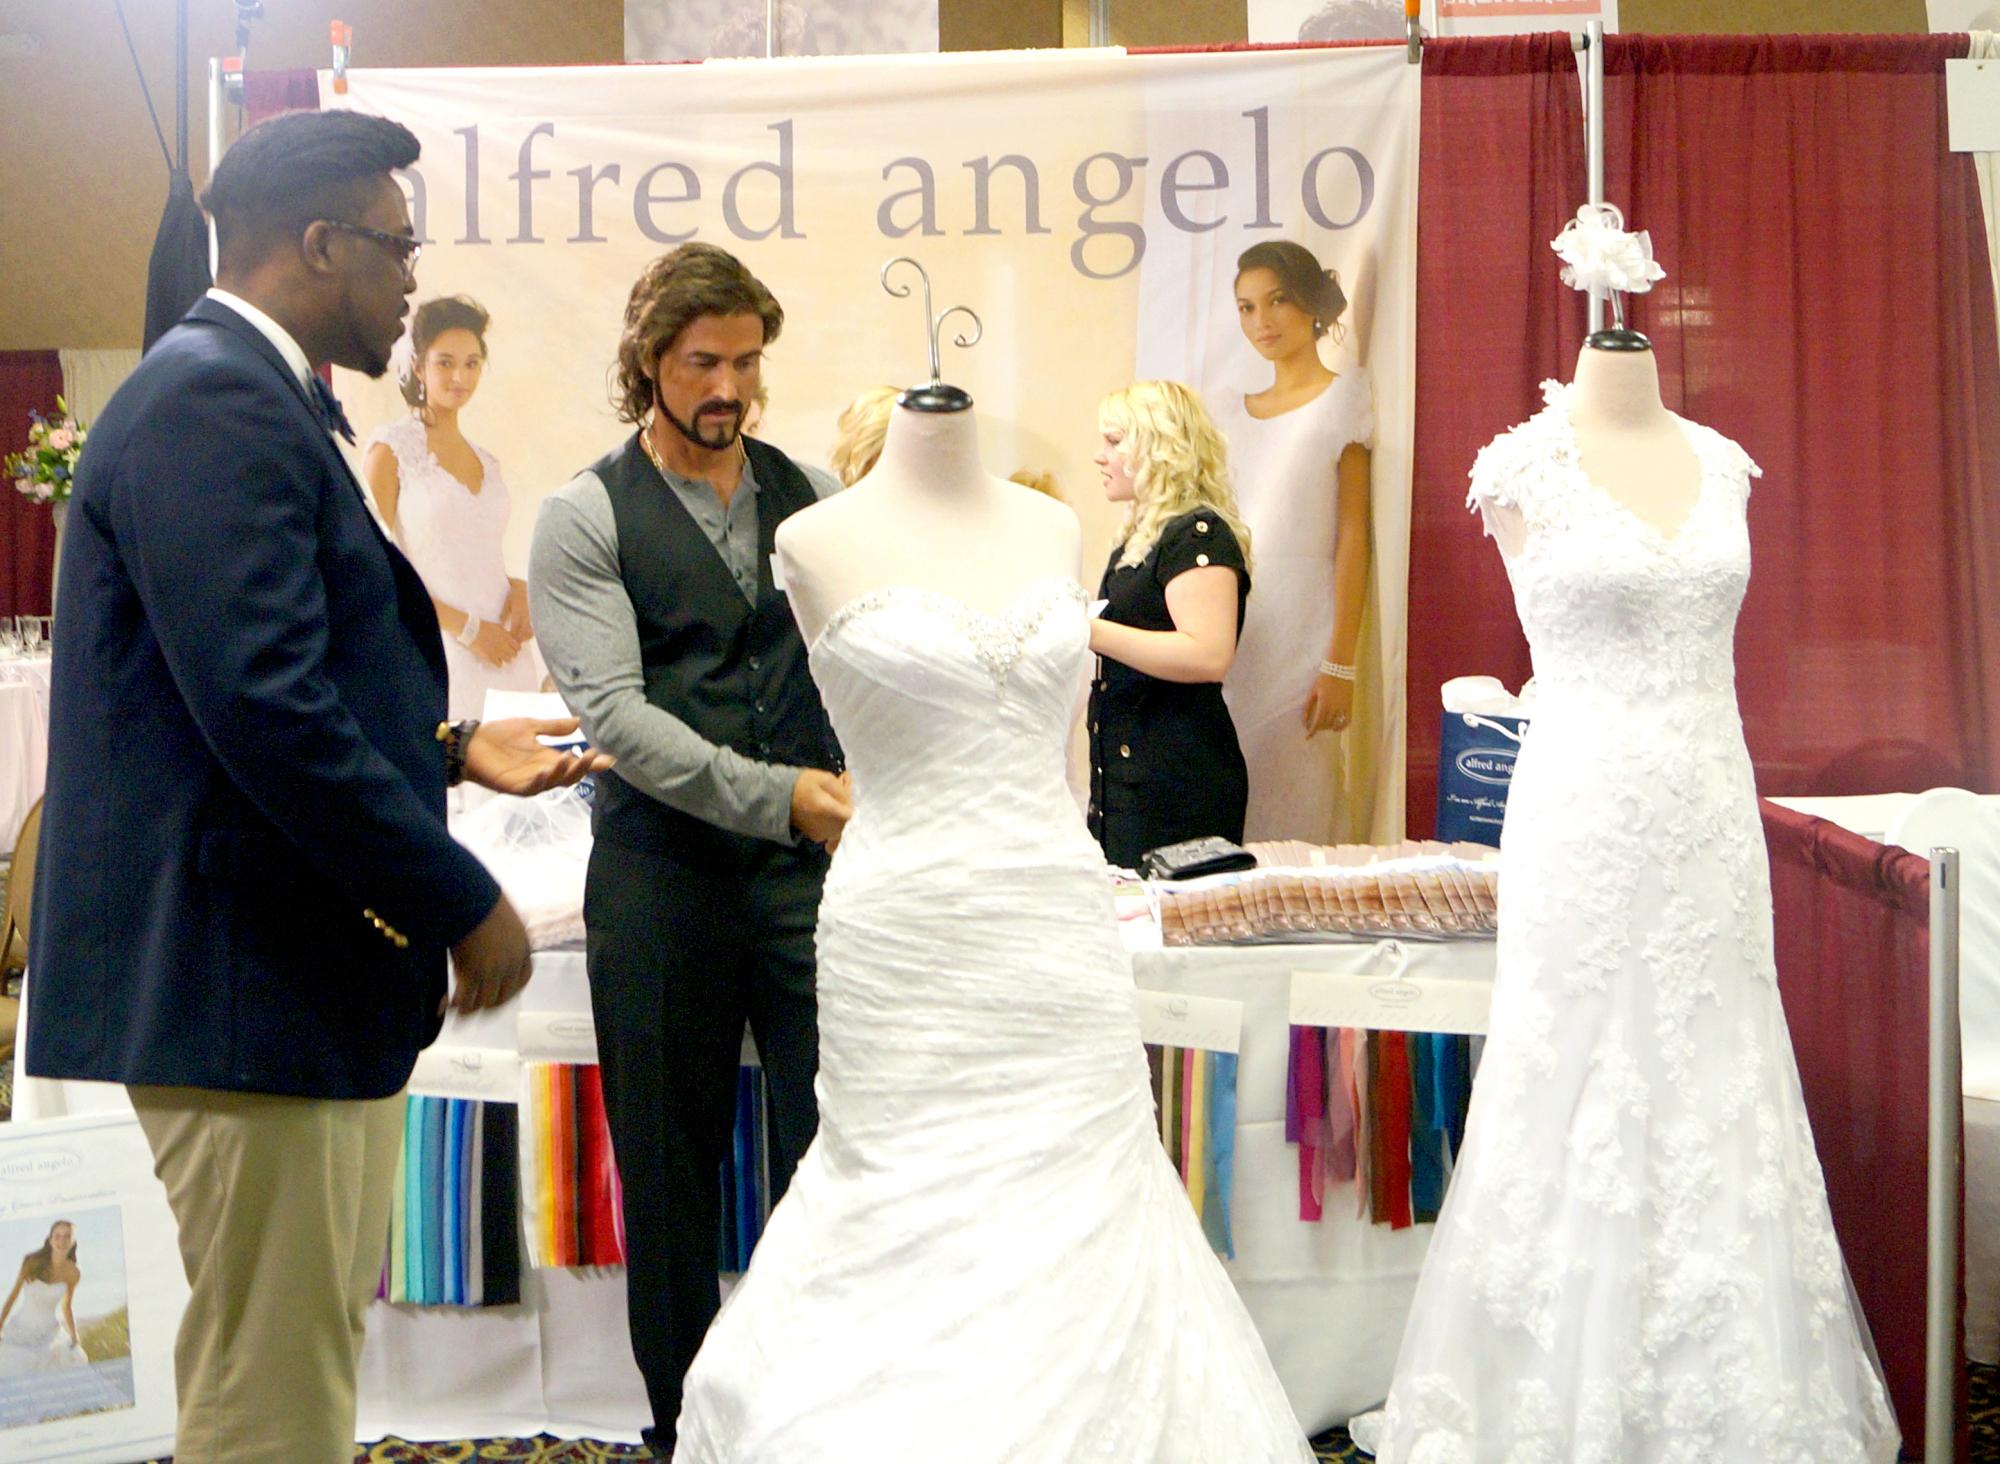 Working a bridal fair